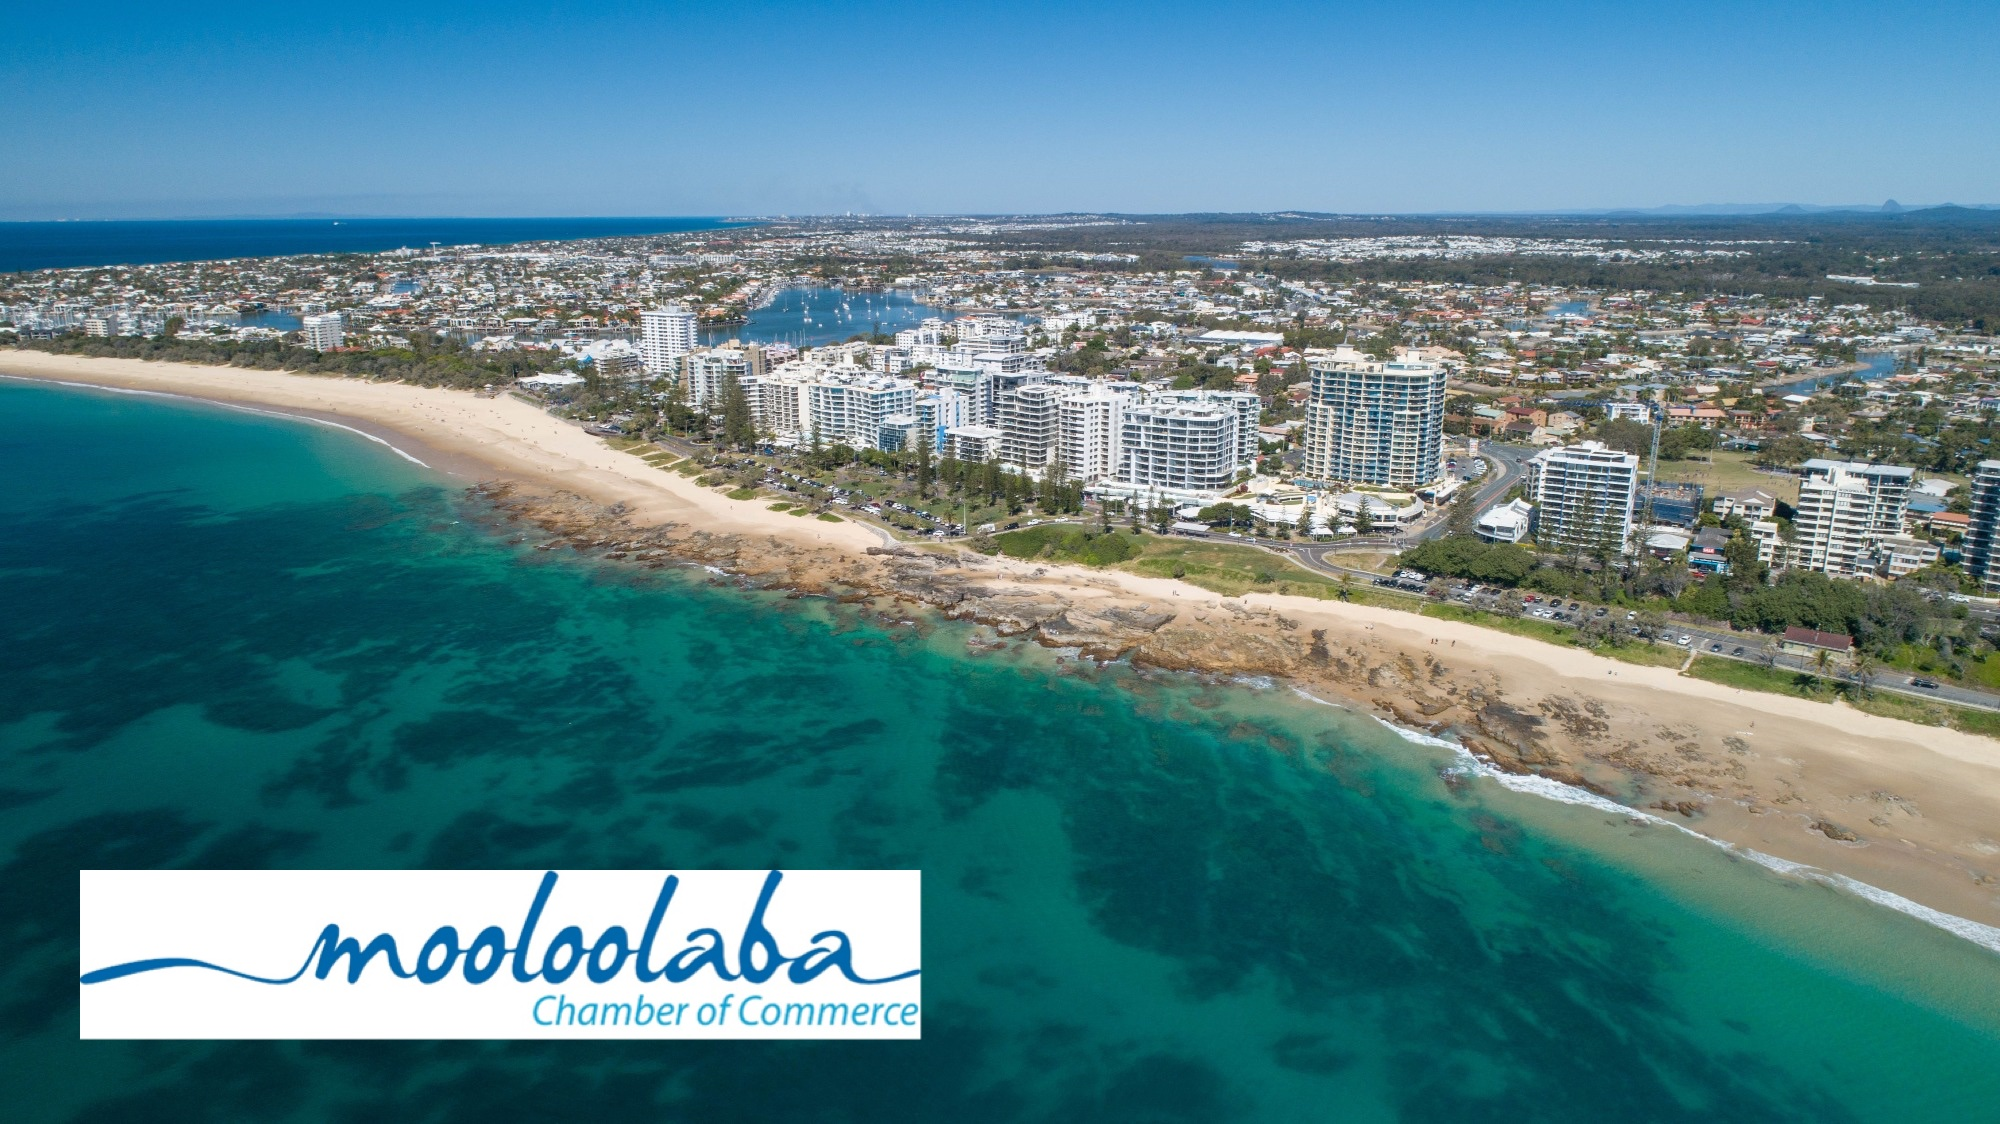 Mooloolaba Chamber of Commerce Annual General Meeting and Social Gathering